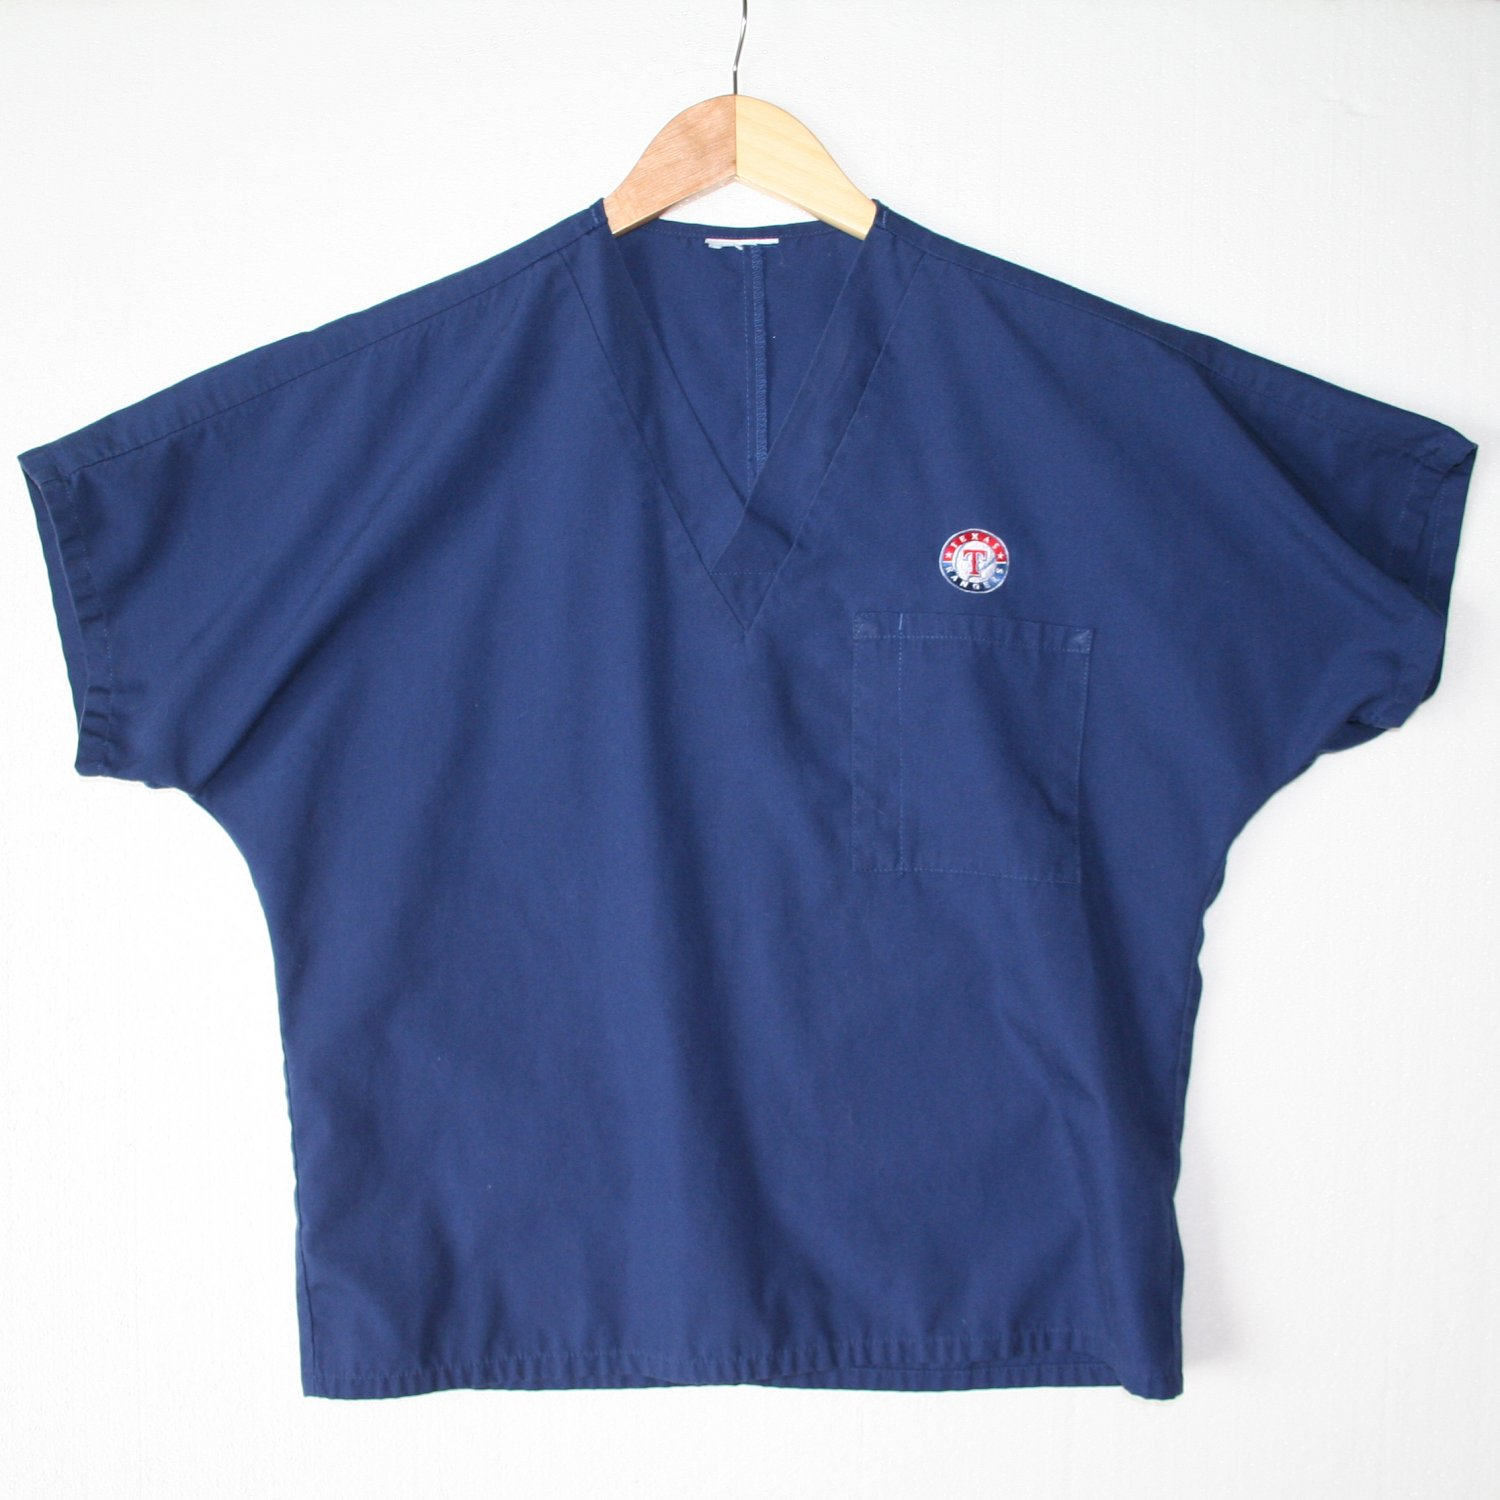 Texas Rangers Baseball Blue Scrub Top Unisex Men's Size Small (S) Women's Size Medium (M)